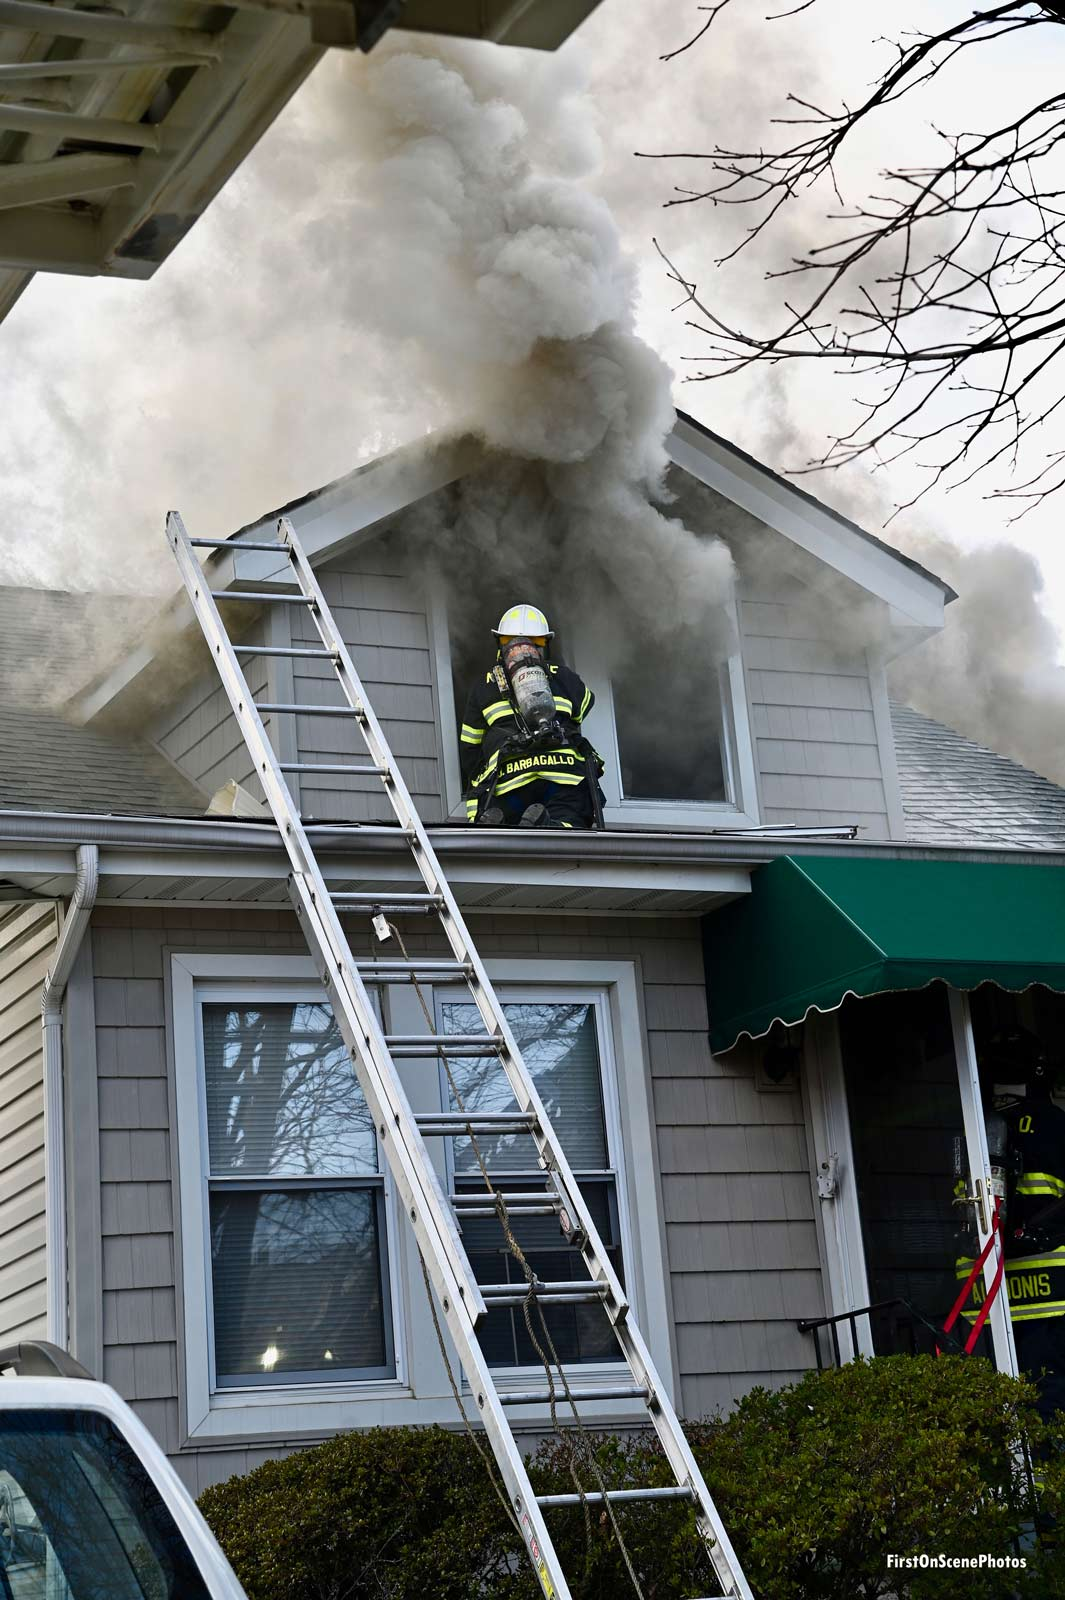 A firefighter on the exterior of a roof while smoke shoots from an upper floor